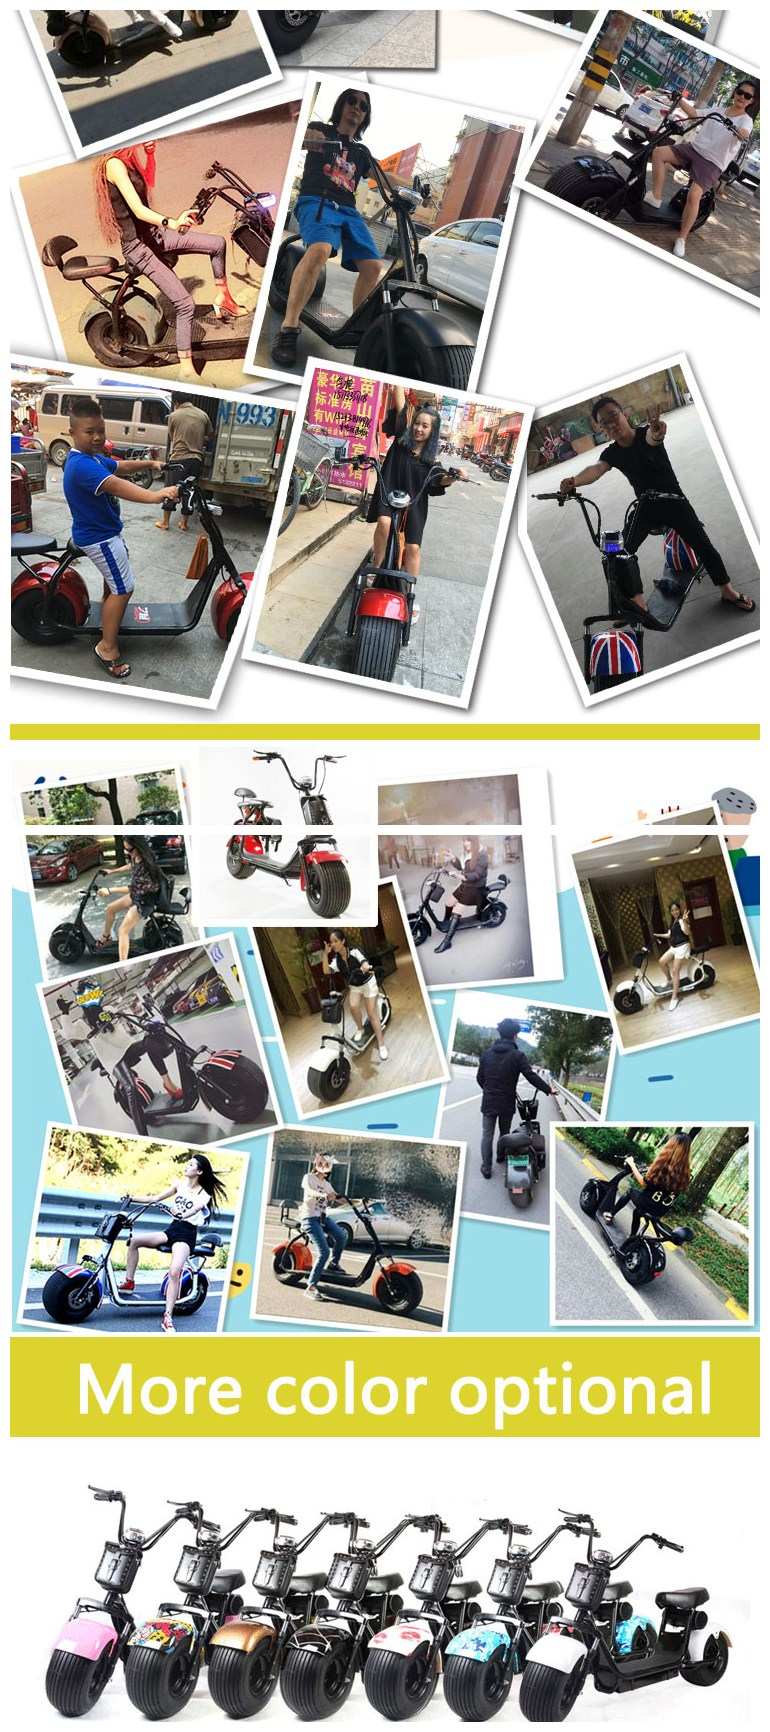 Leadway electric tricycle chopper motorcycle 8000w